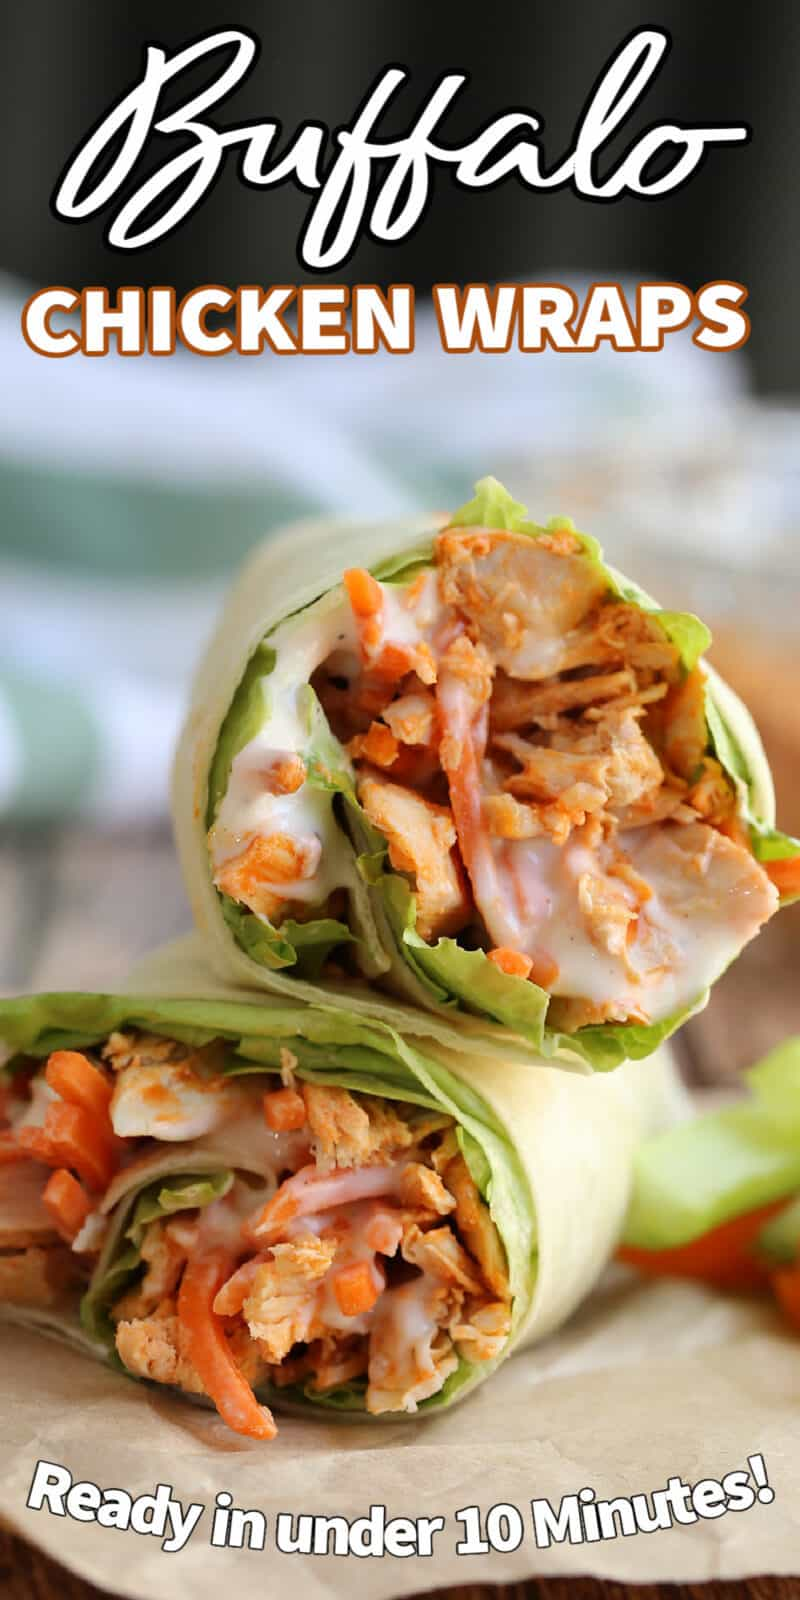 buffalo chicken wraps with text